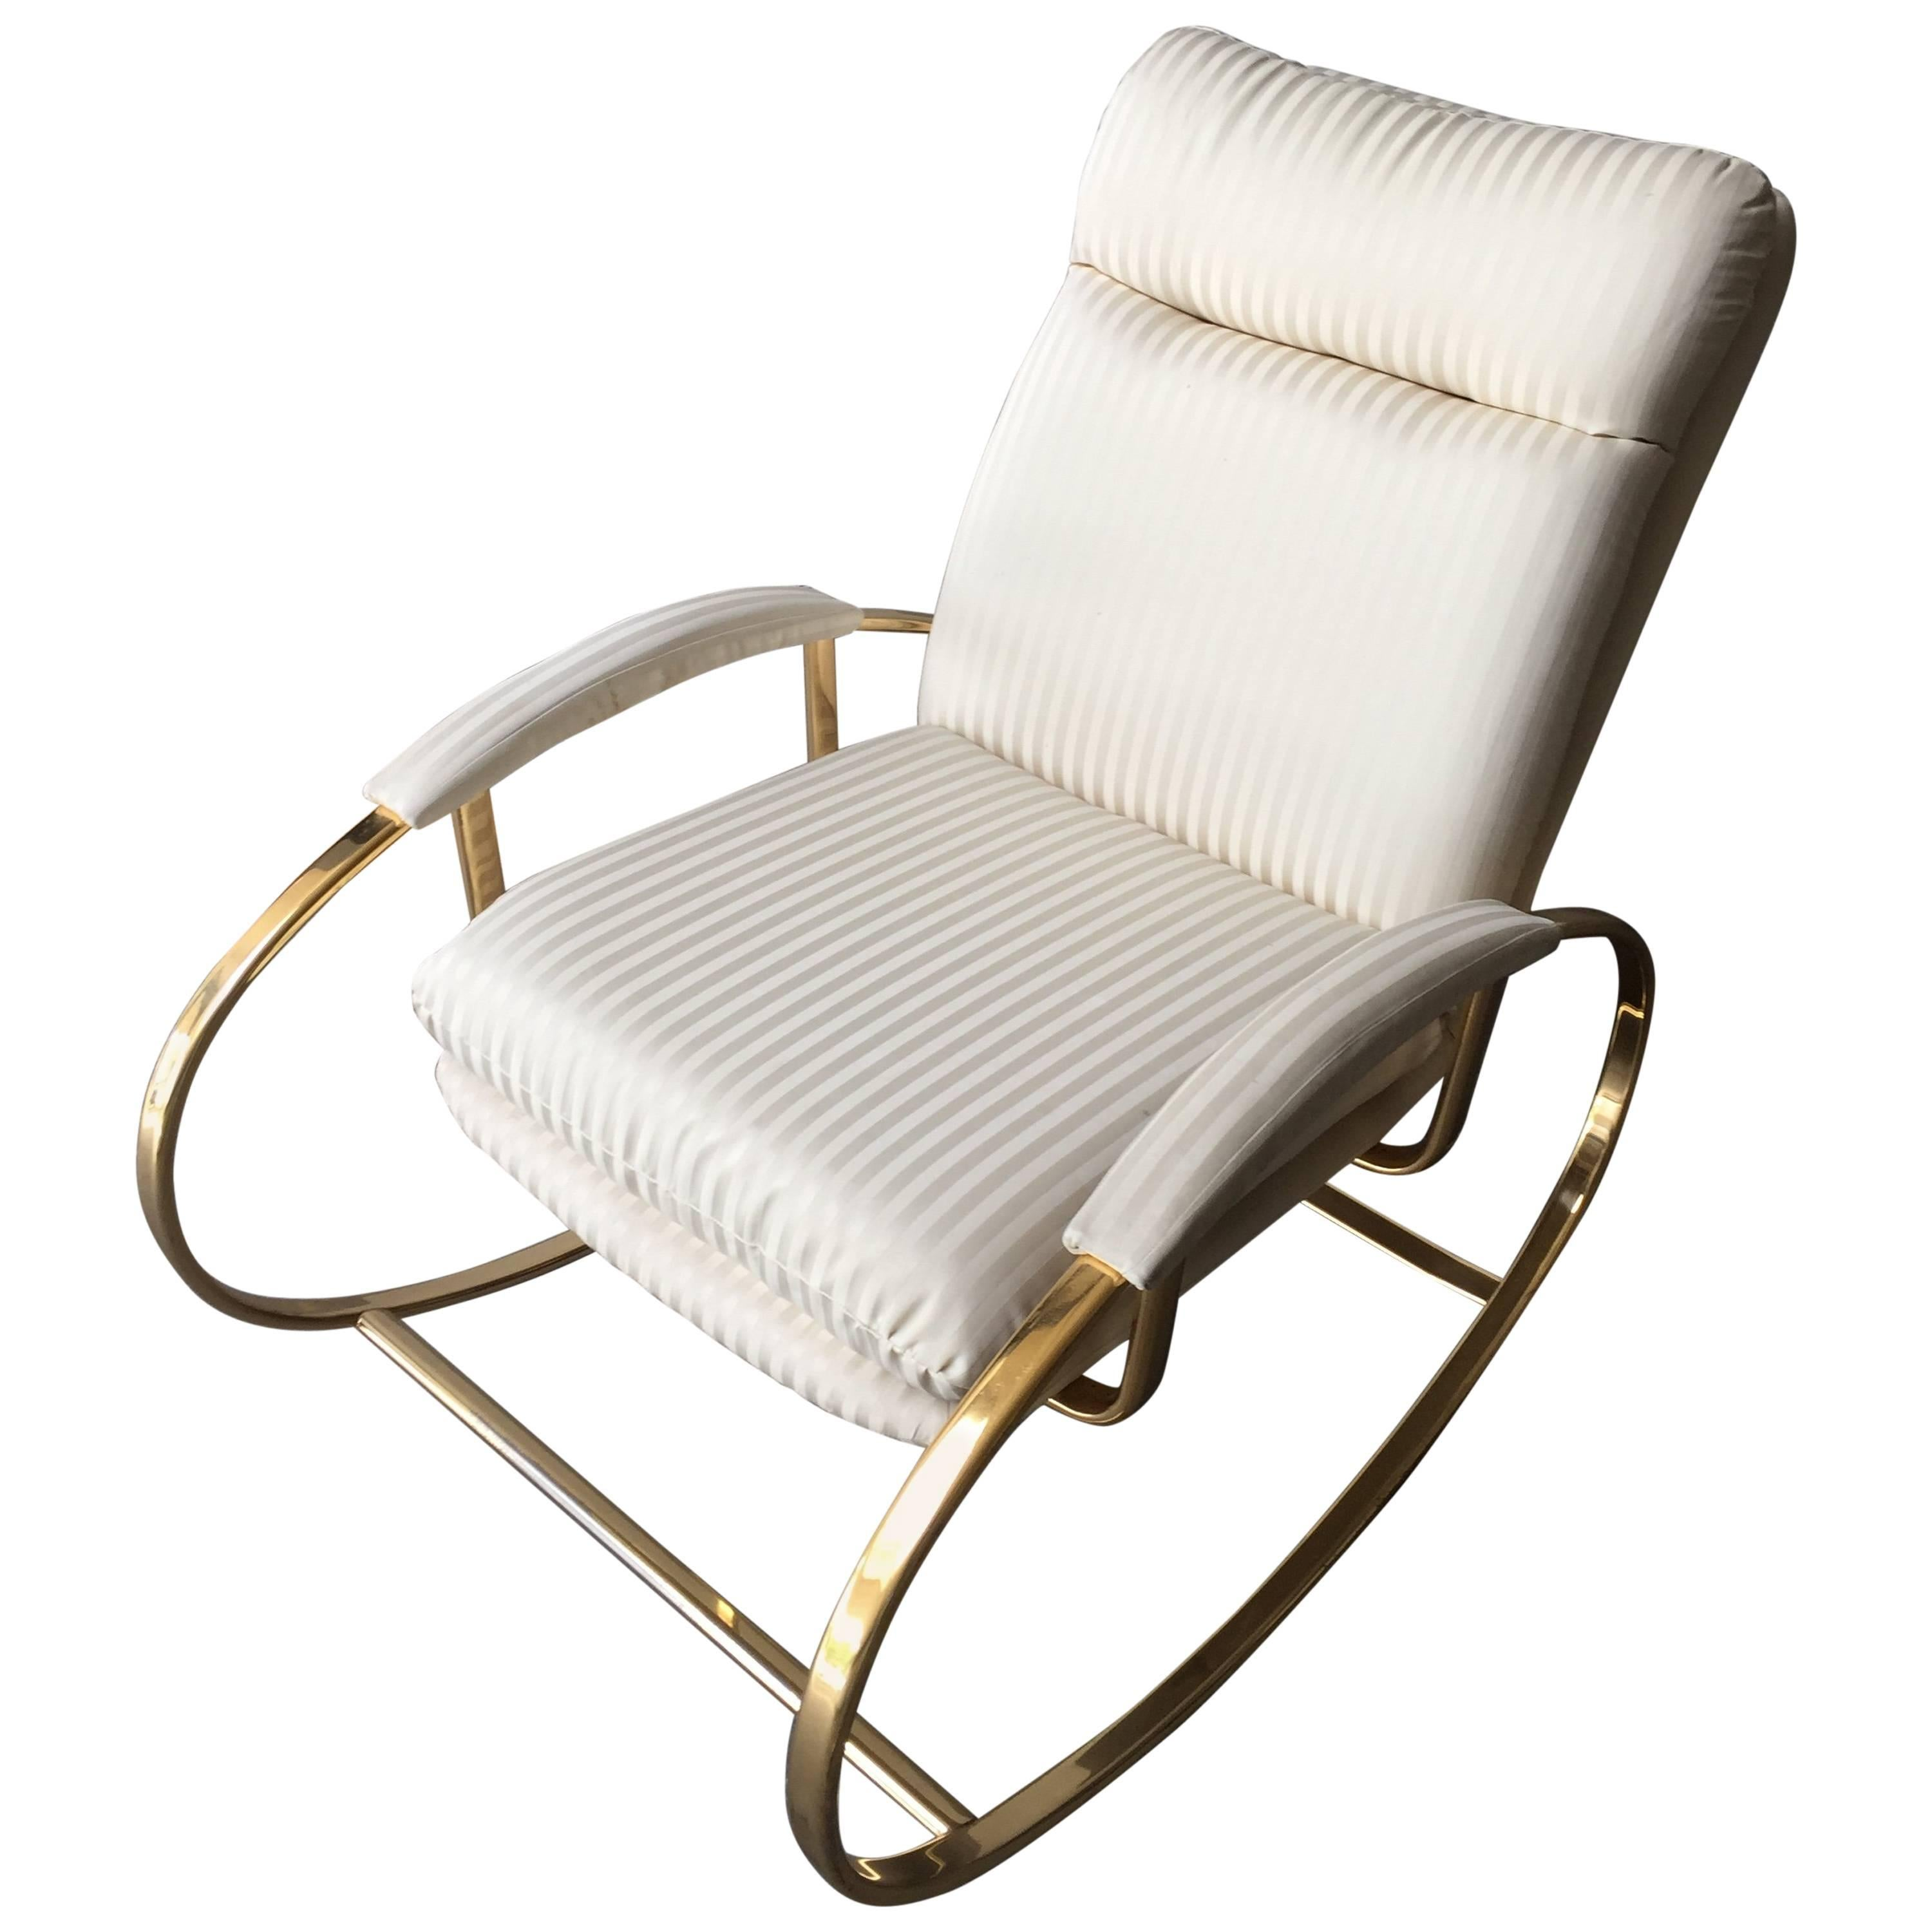 Merveilleux Italian Brass Metal Rocking Chair With White Original Fabric From 1960s For  Sale